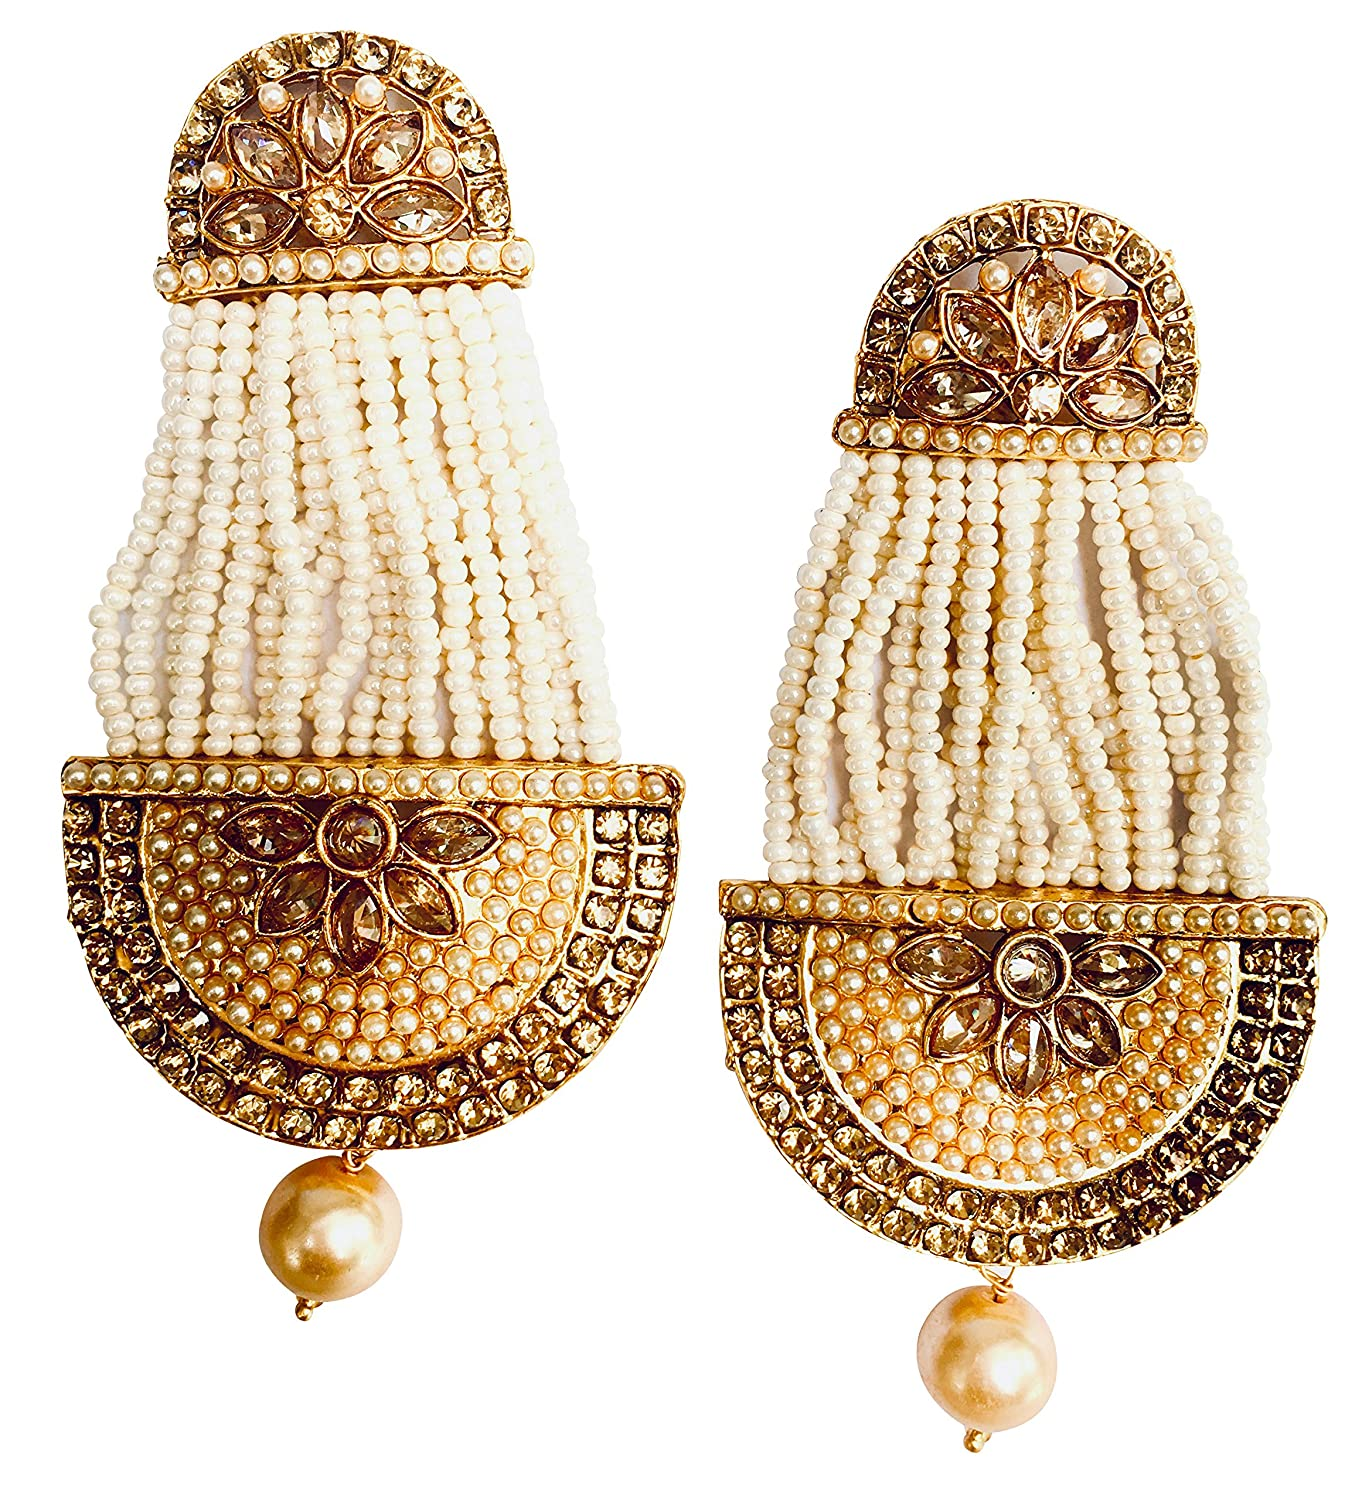 057522c05 Fashion Costume Imitation Artificial Jewellery Hyderabad style in Gold  Polish with Stones